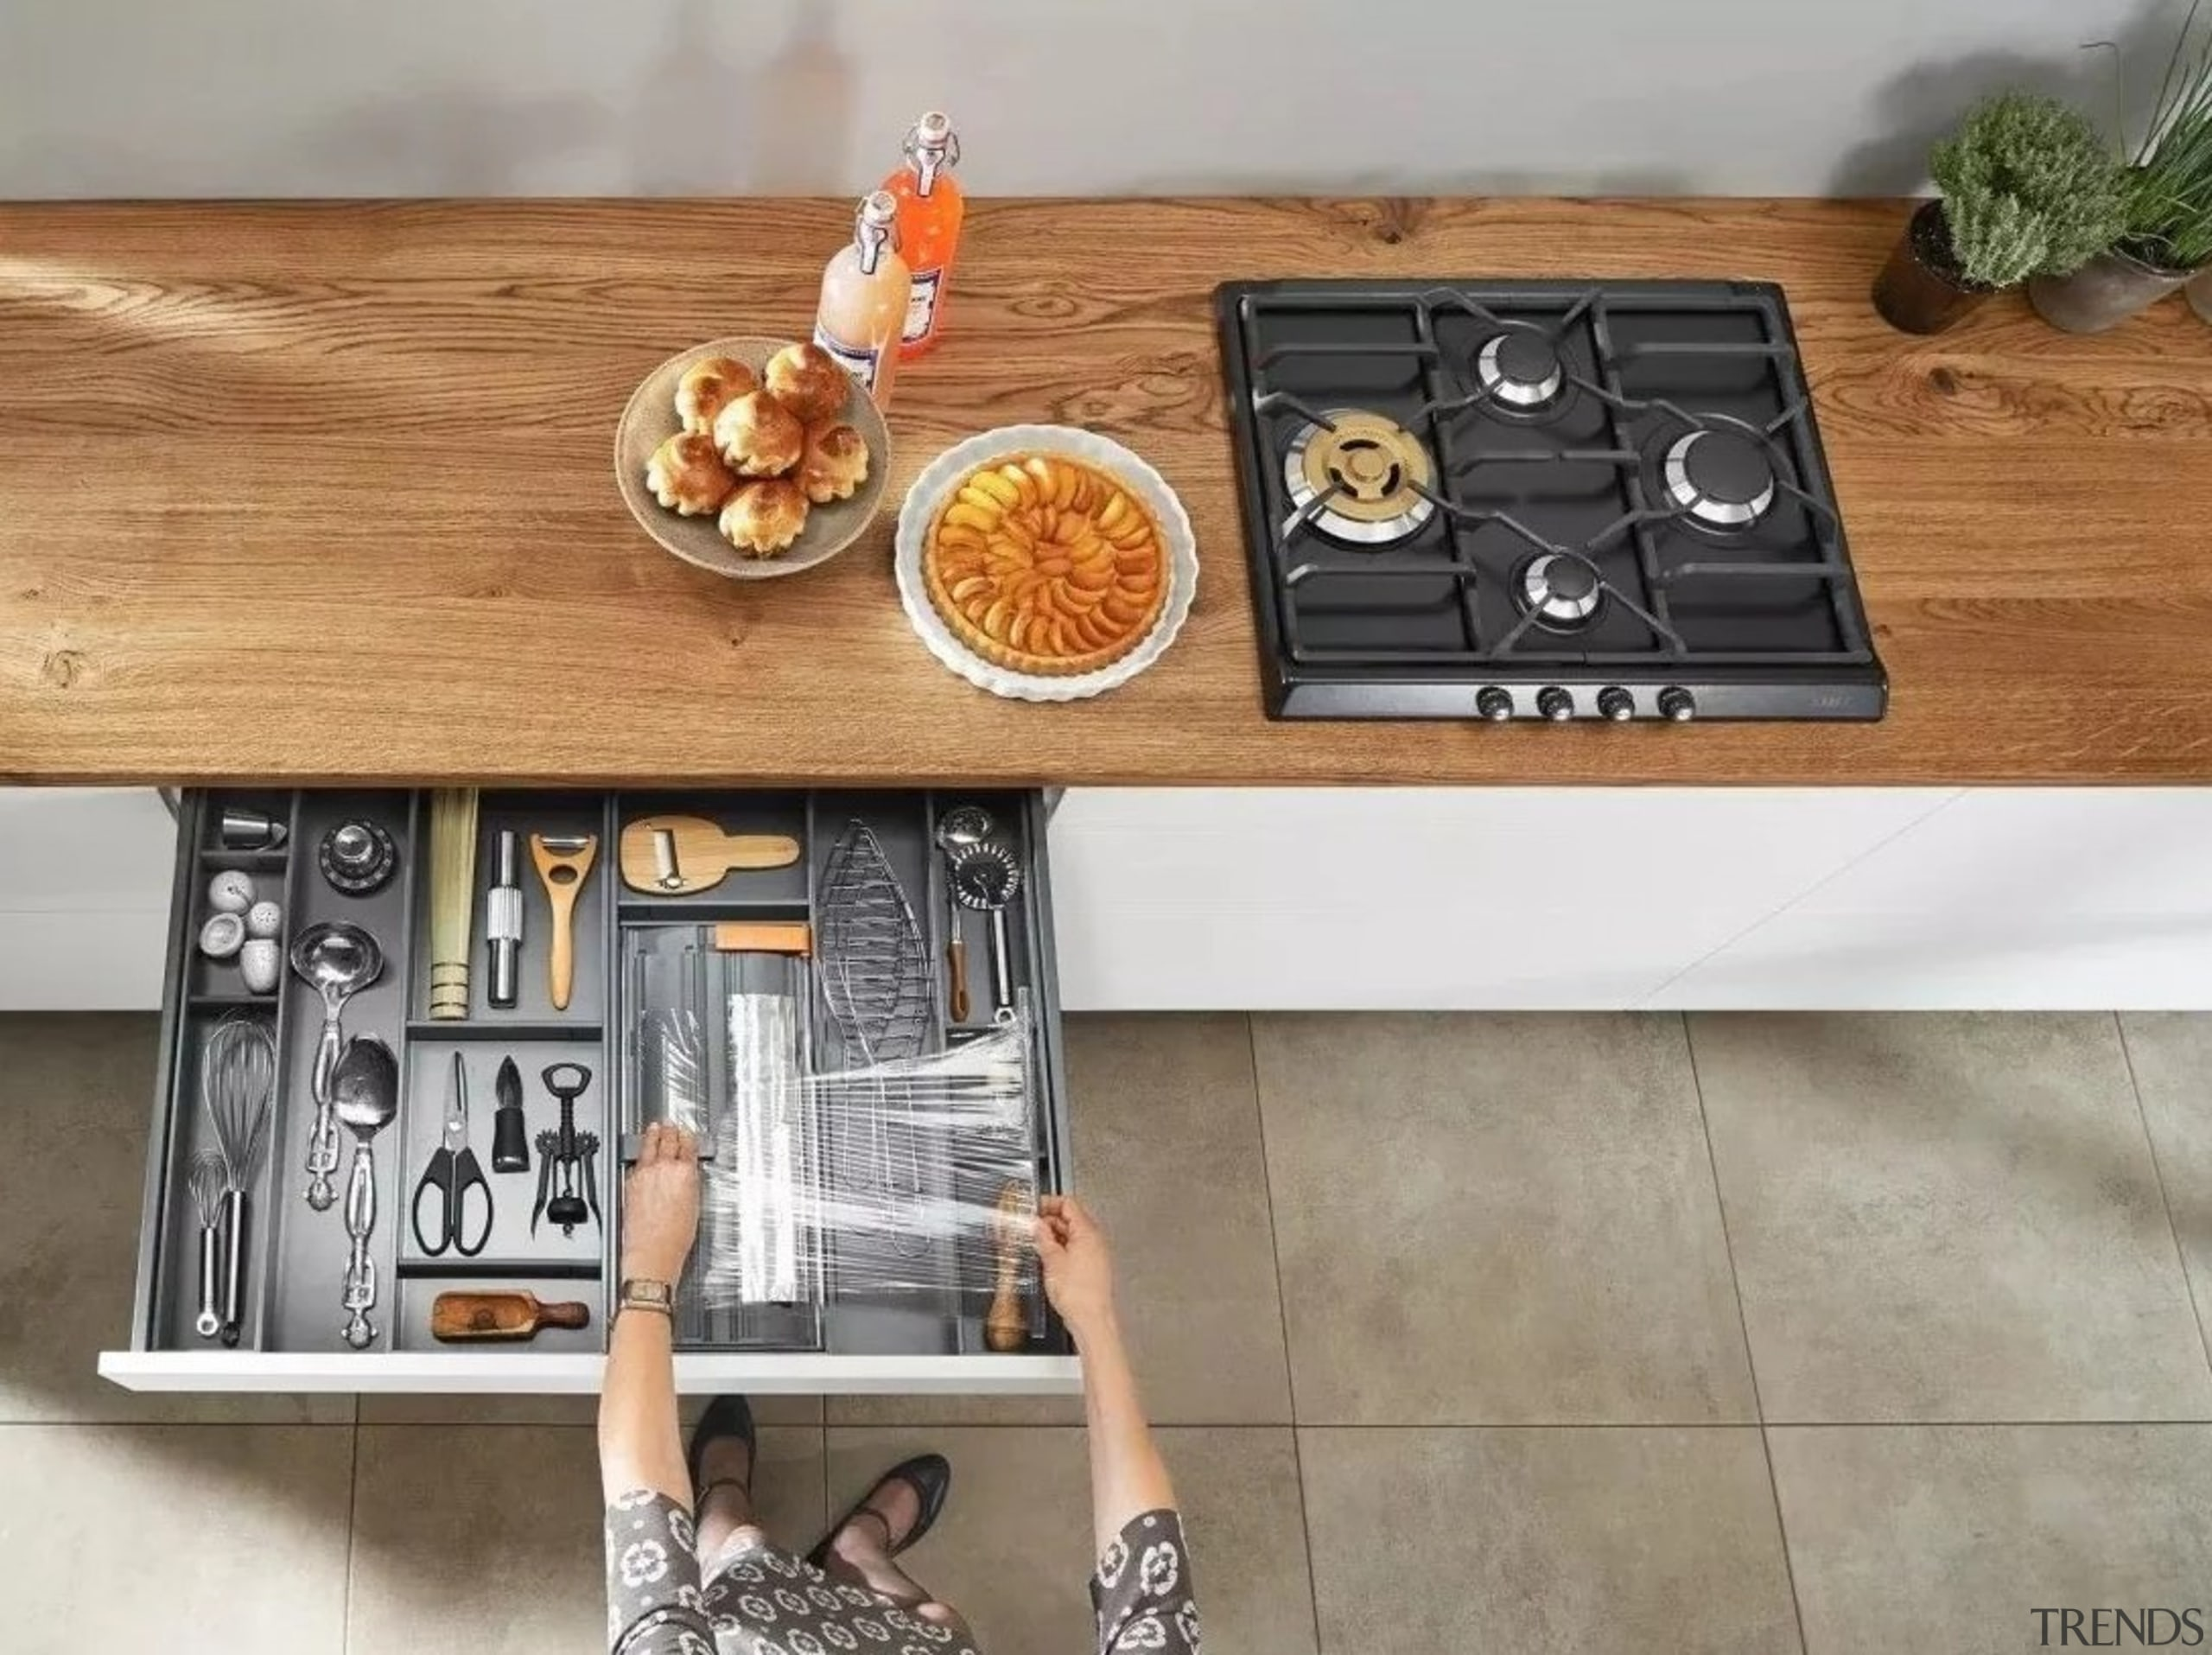 Image from: Blum New Zealand furniture, table, gray